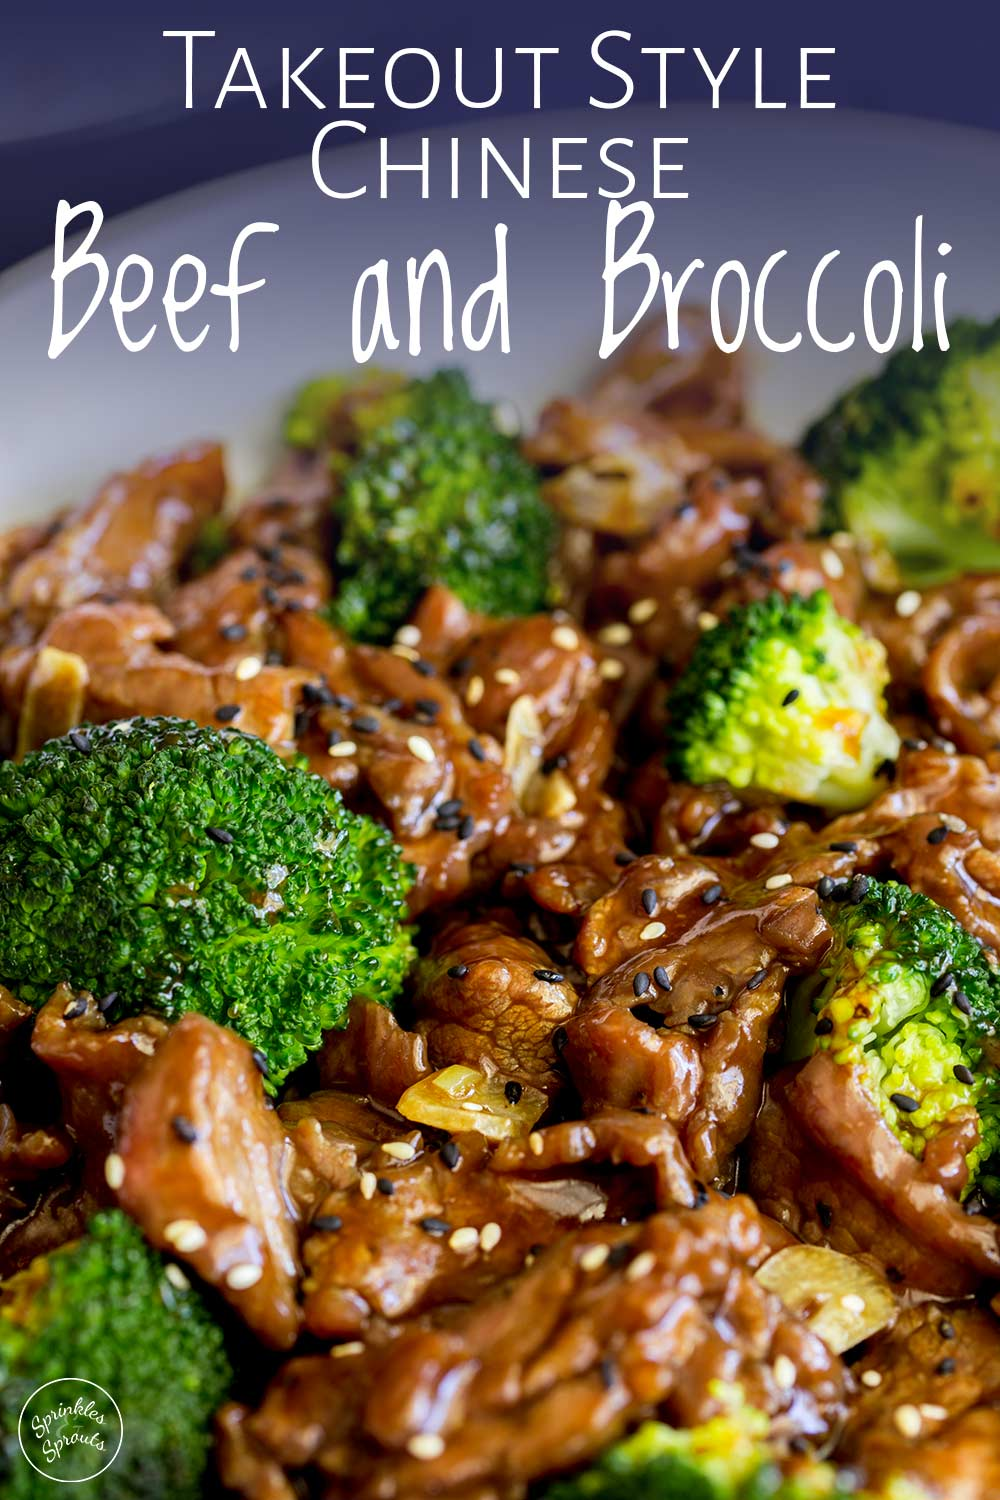 Close up on the bowl of beef and broccoli with the text at the top